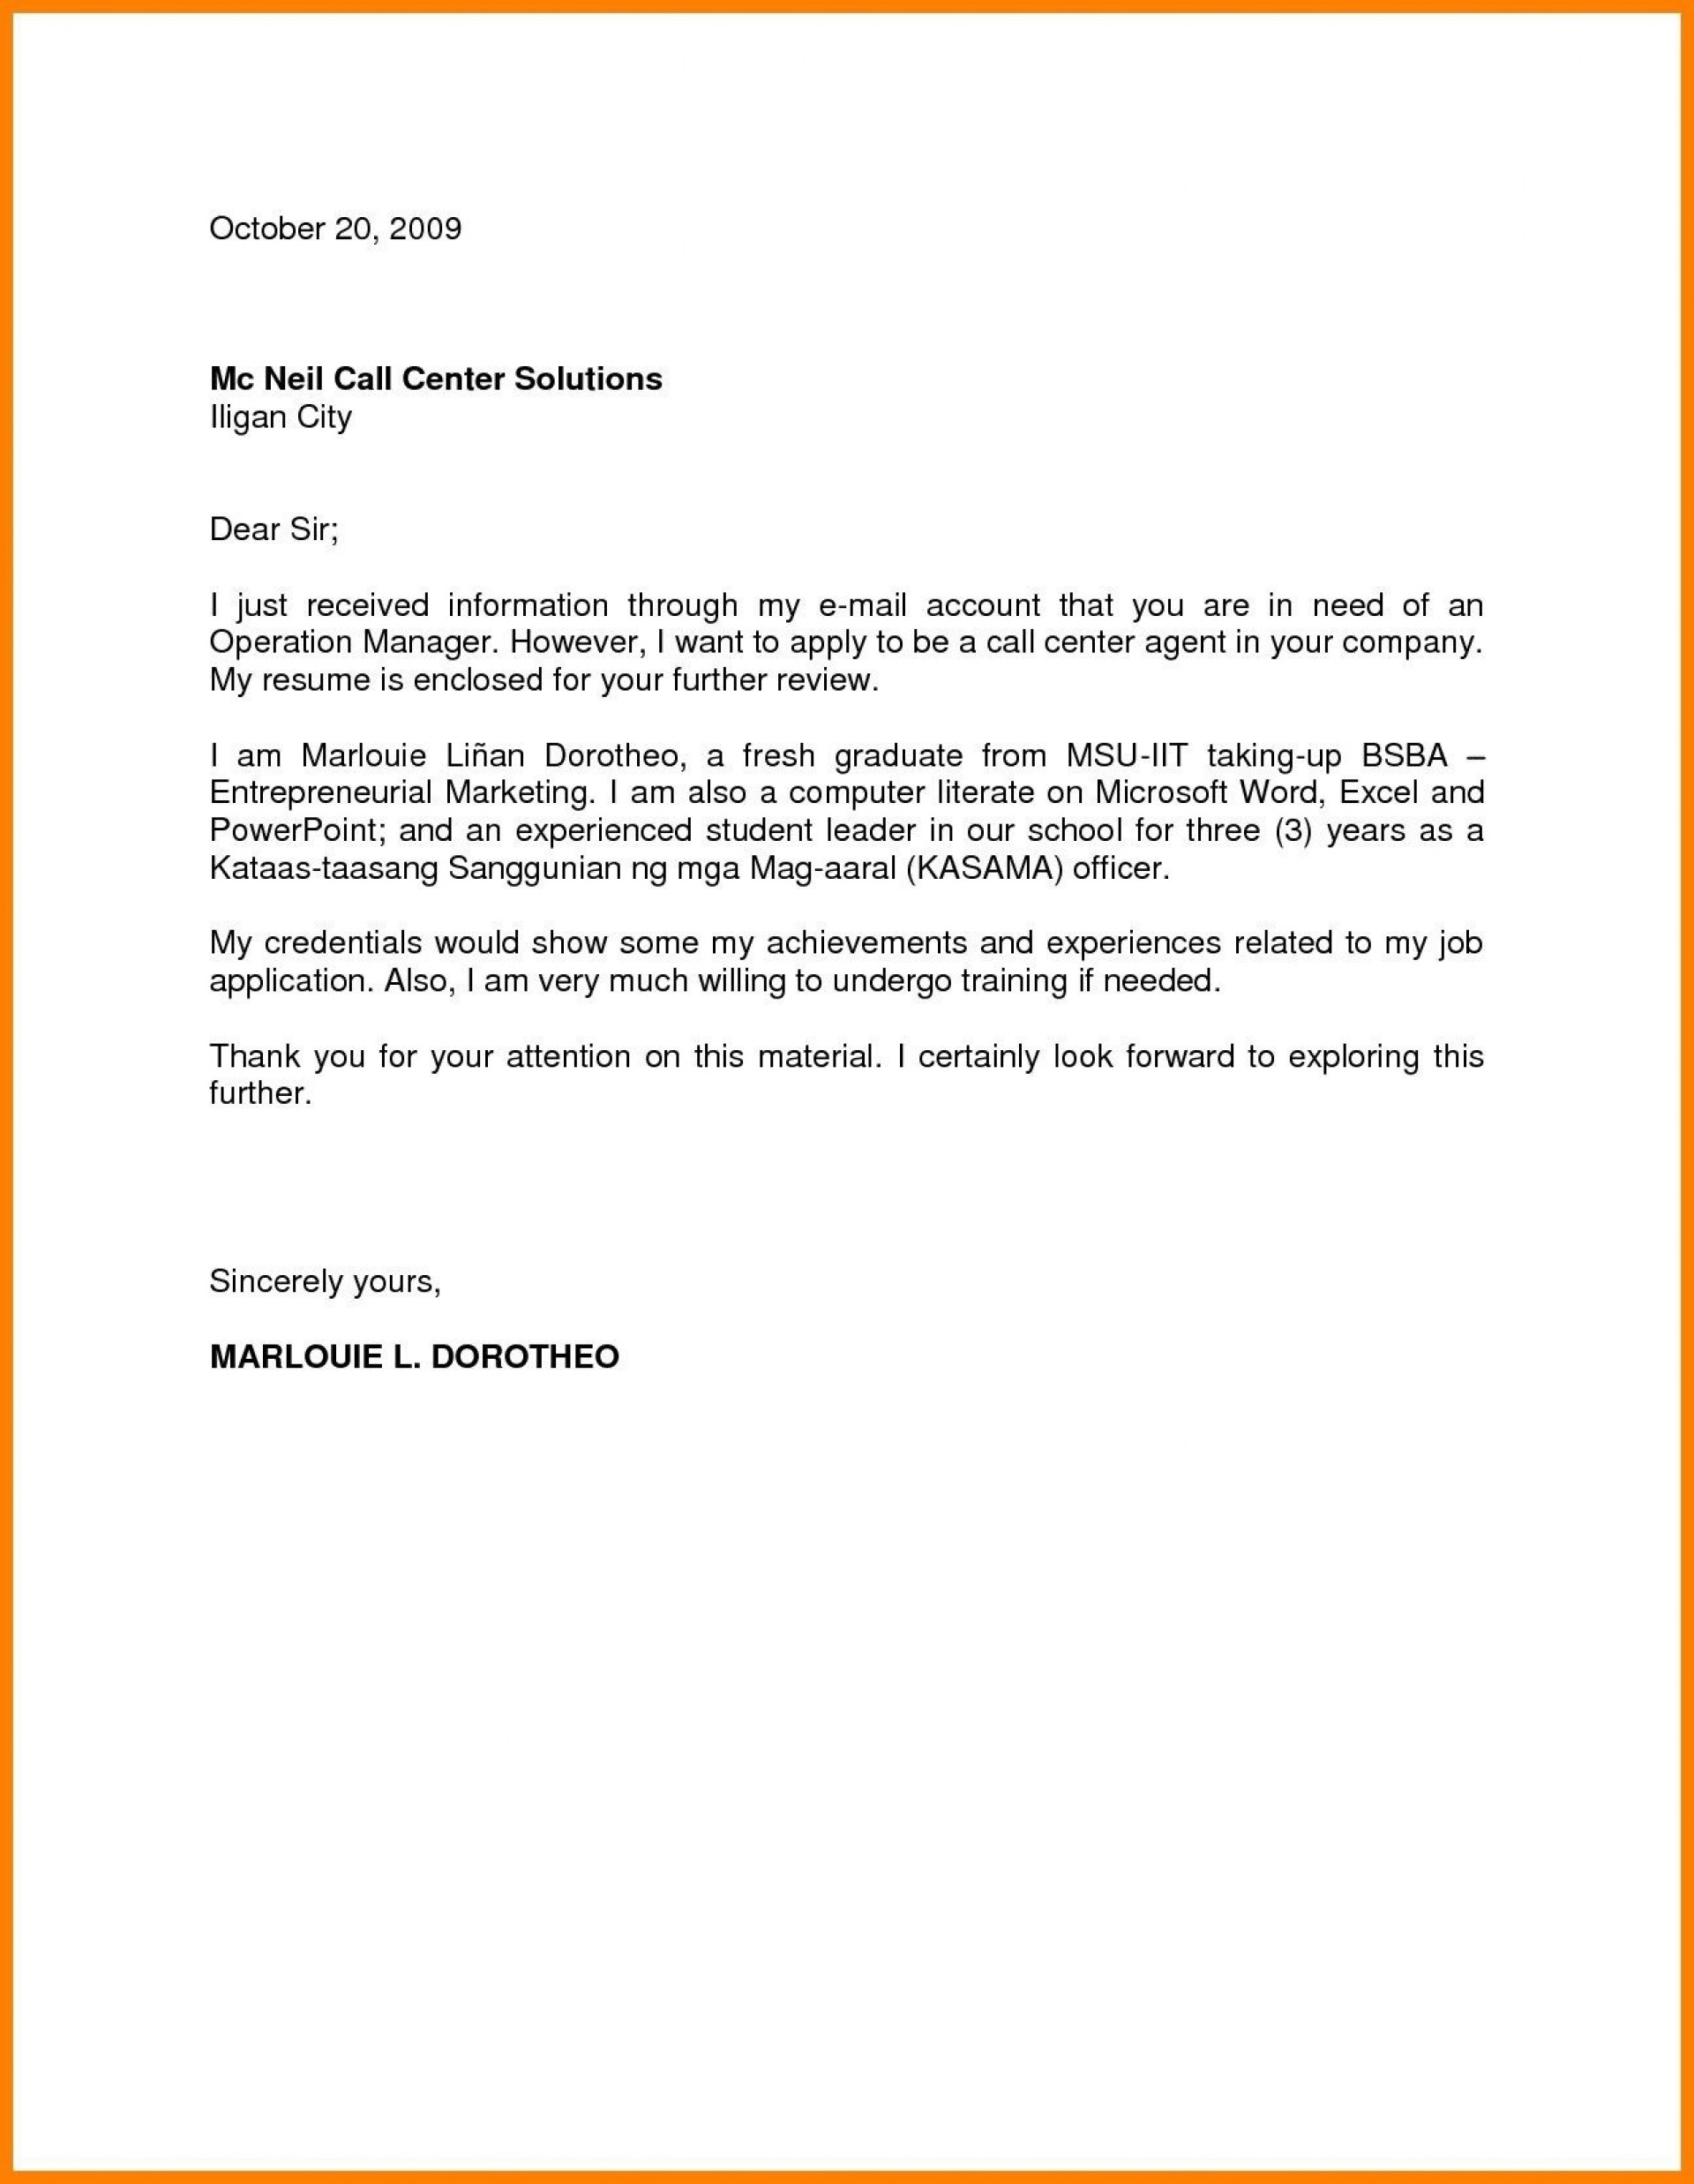 009 Simple Cover Letter Sample Template For Fresh Graduate In Marketing Photo 1920